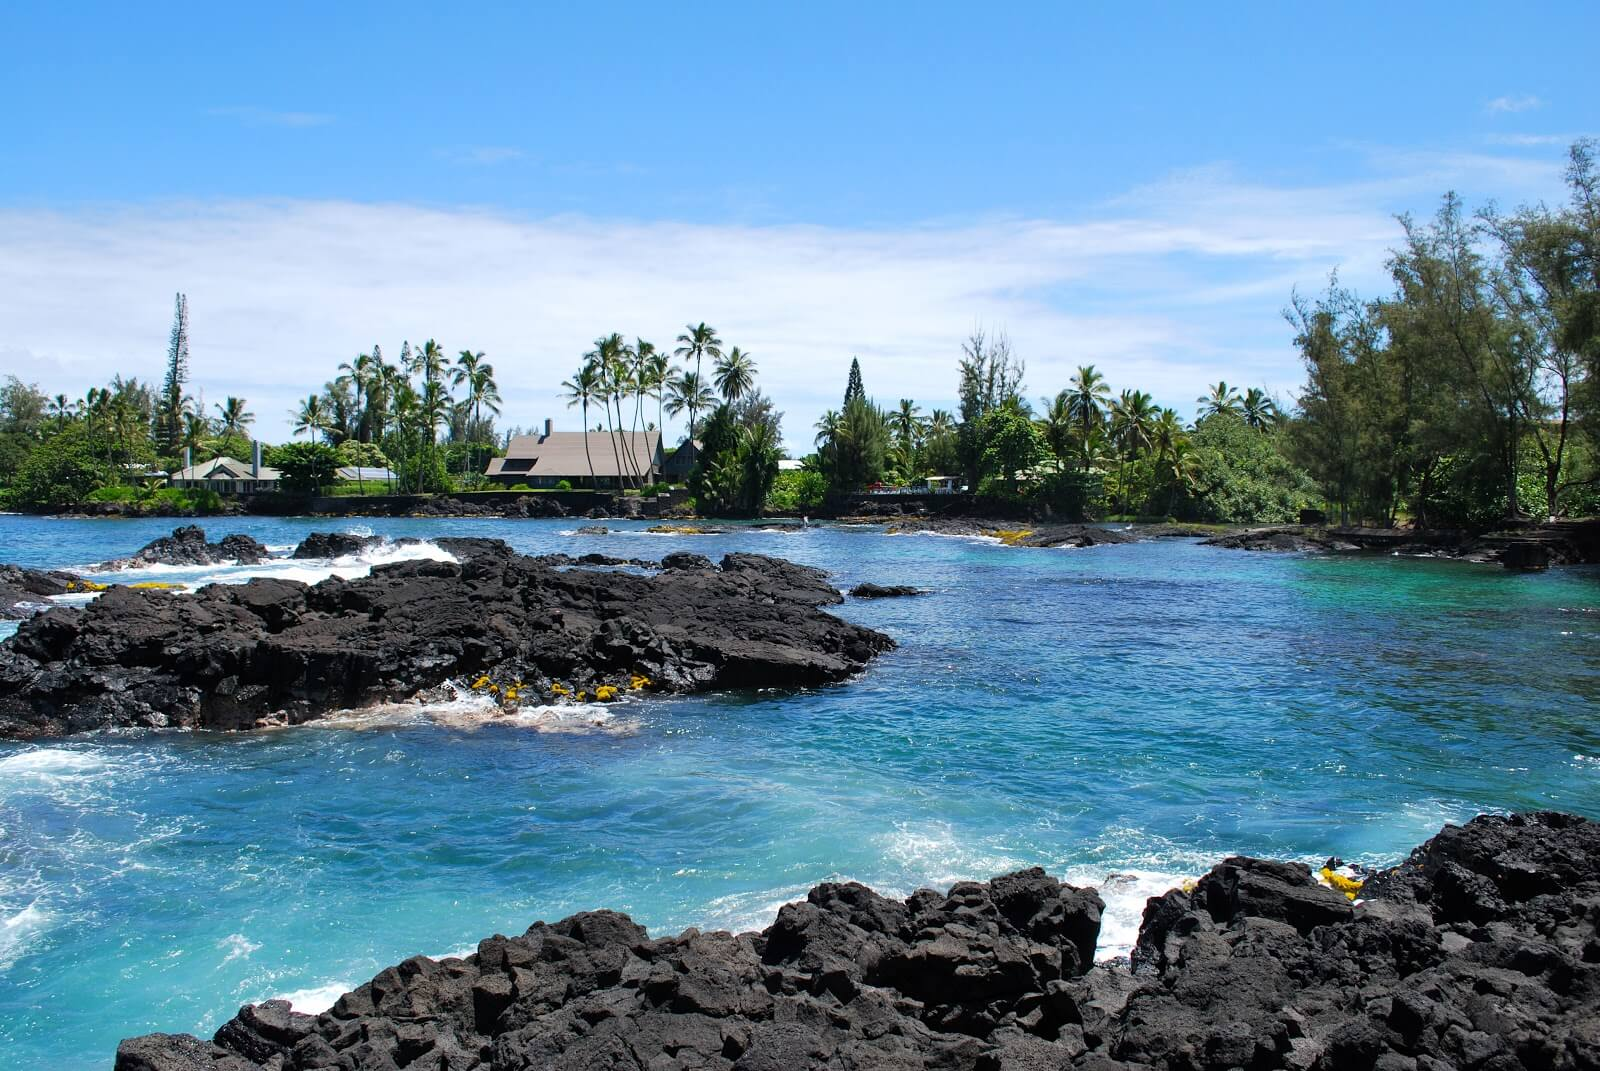 A Curse That Scares Visitors To Hawaii